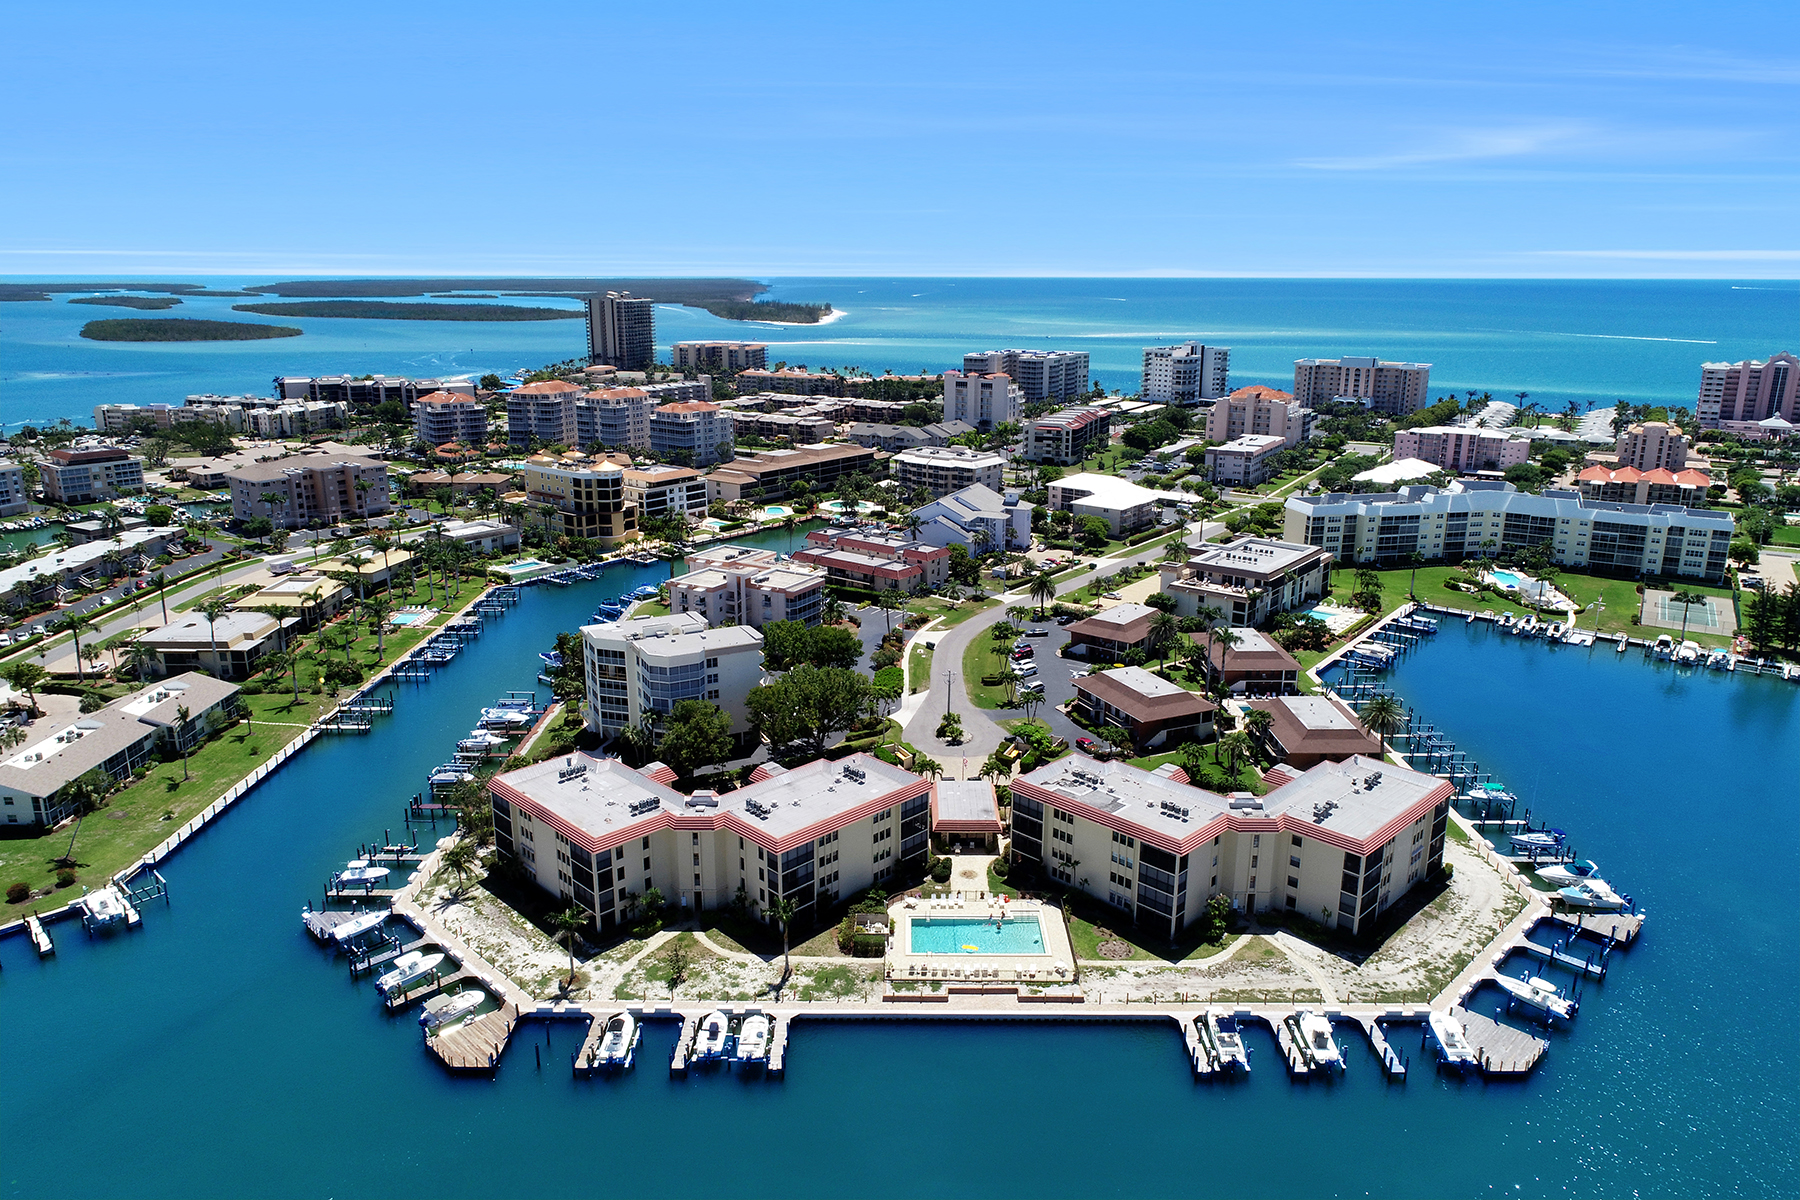 Condominium for Sale at MARCO ISLAND 880 Huron Ct 2-105, Marco Island, Florida 34145 United States